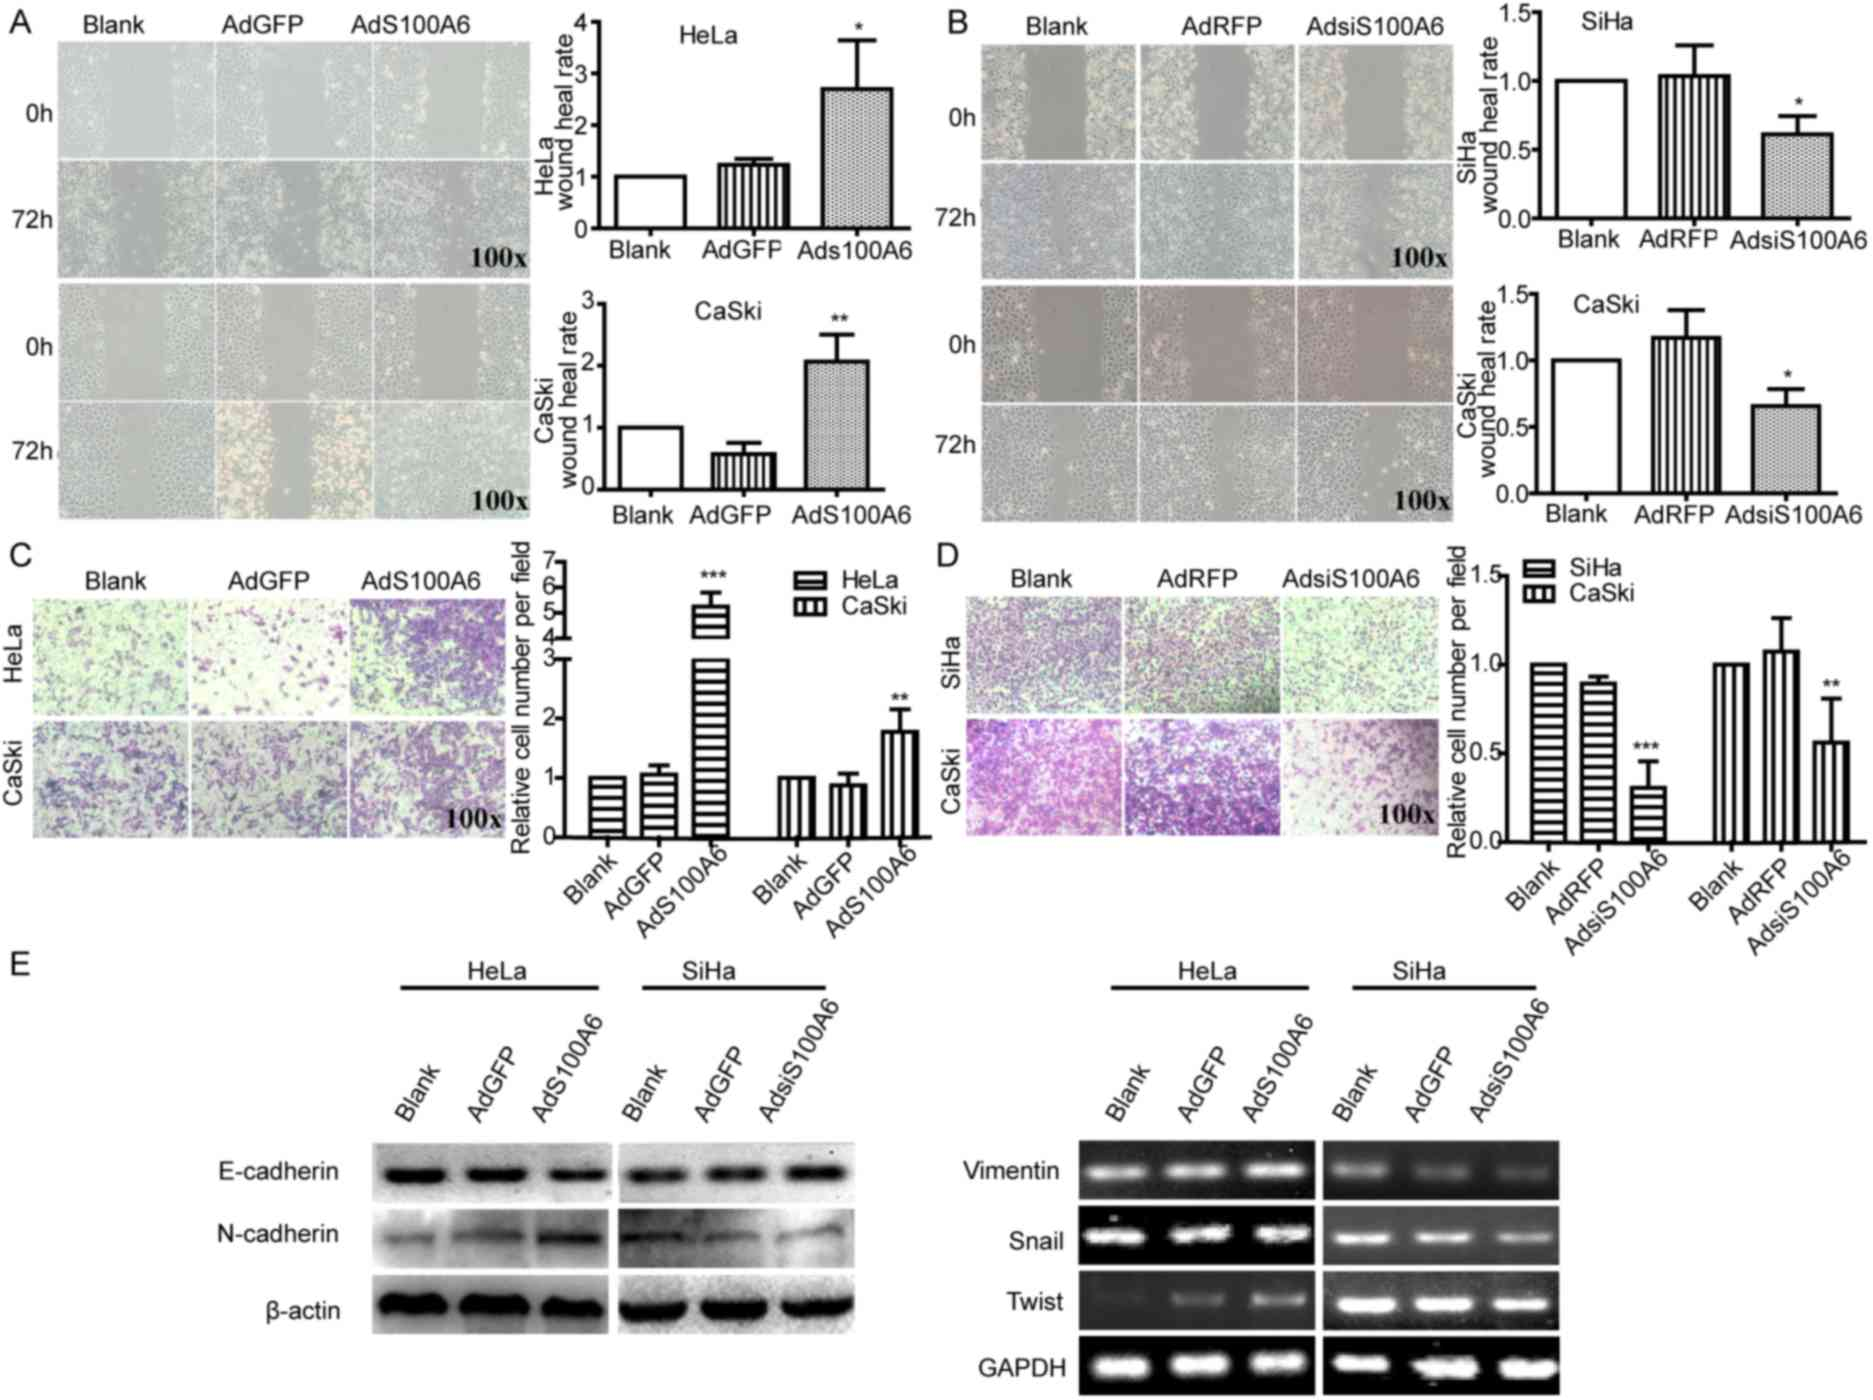 s100a6 promotes the proliferation and migration of cervical cancer